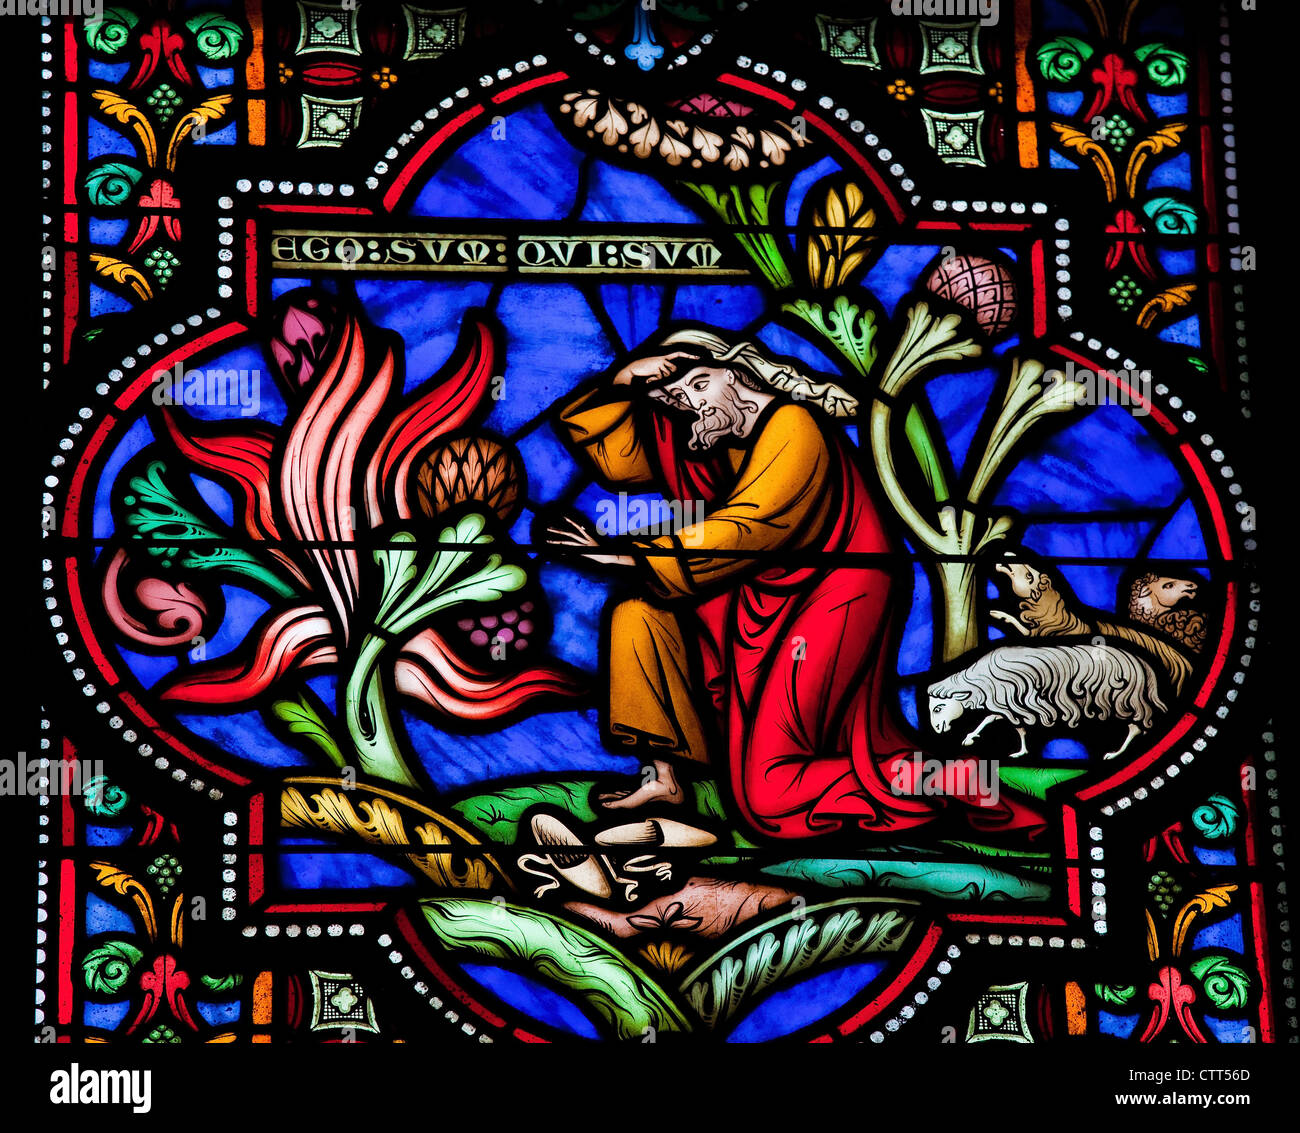 Moses and the burning bush on Mount Horeb. This window was created more than 150 years ago, no property release - Stock Image